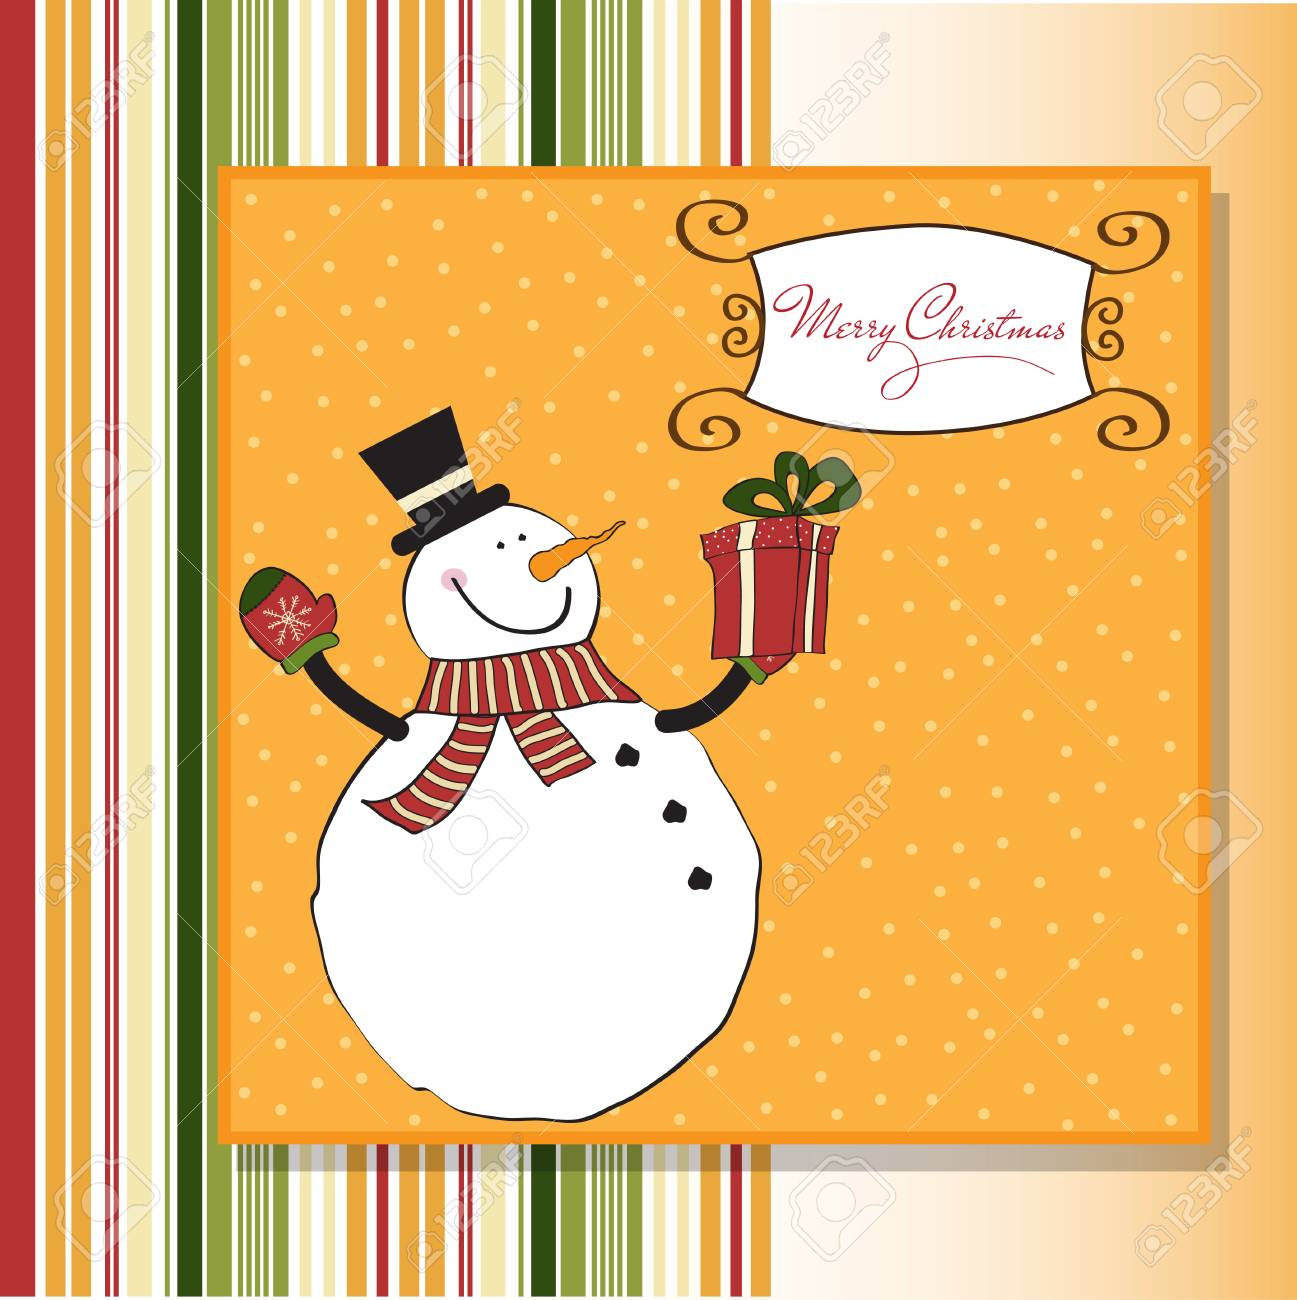 Christmas greeting card with snowman Stock Vector - 11358697